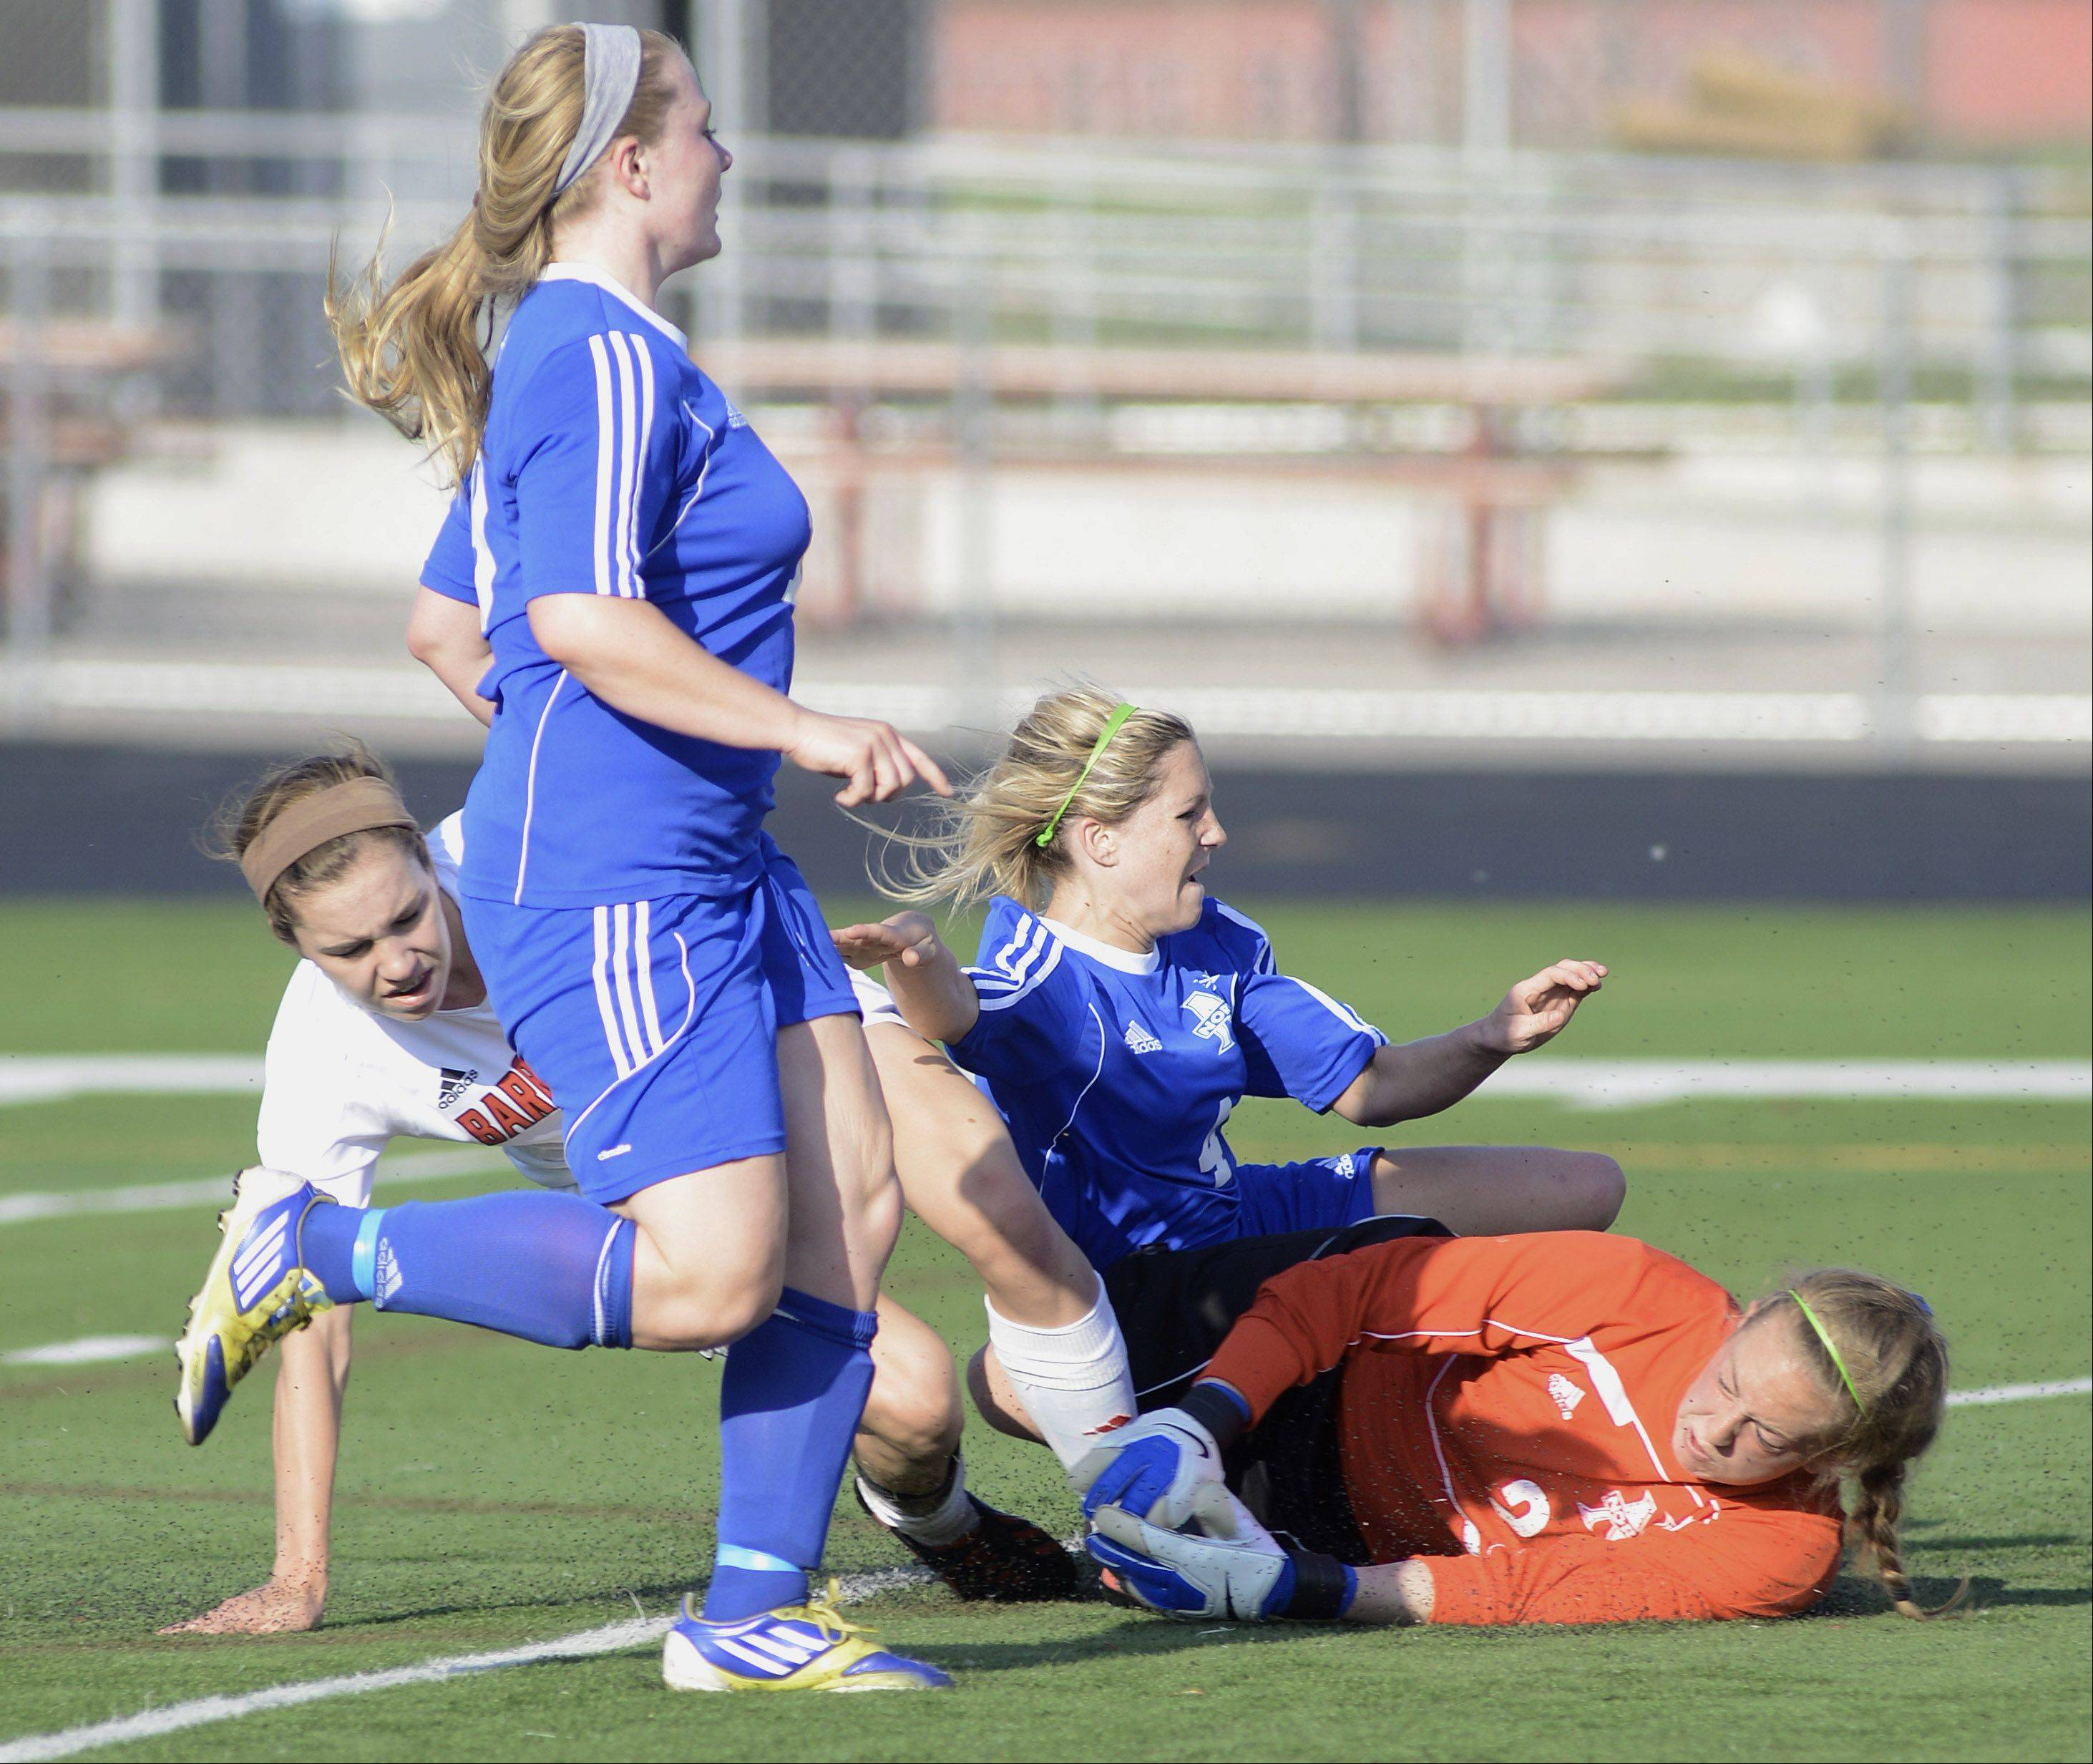 Barrington's Jenna Szczesny collides with St. Charles North goalie Shelby Stitz and Jenny Barr during her drive to the net, resulting in a goal for Barrington in the second half of the Class 3A supersectional on Wednesday. Megan O'Leary is at left.